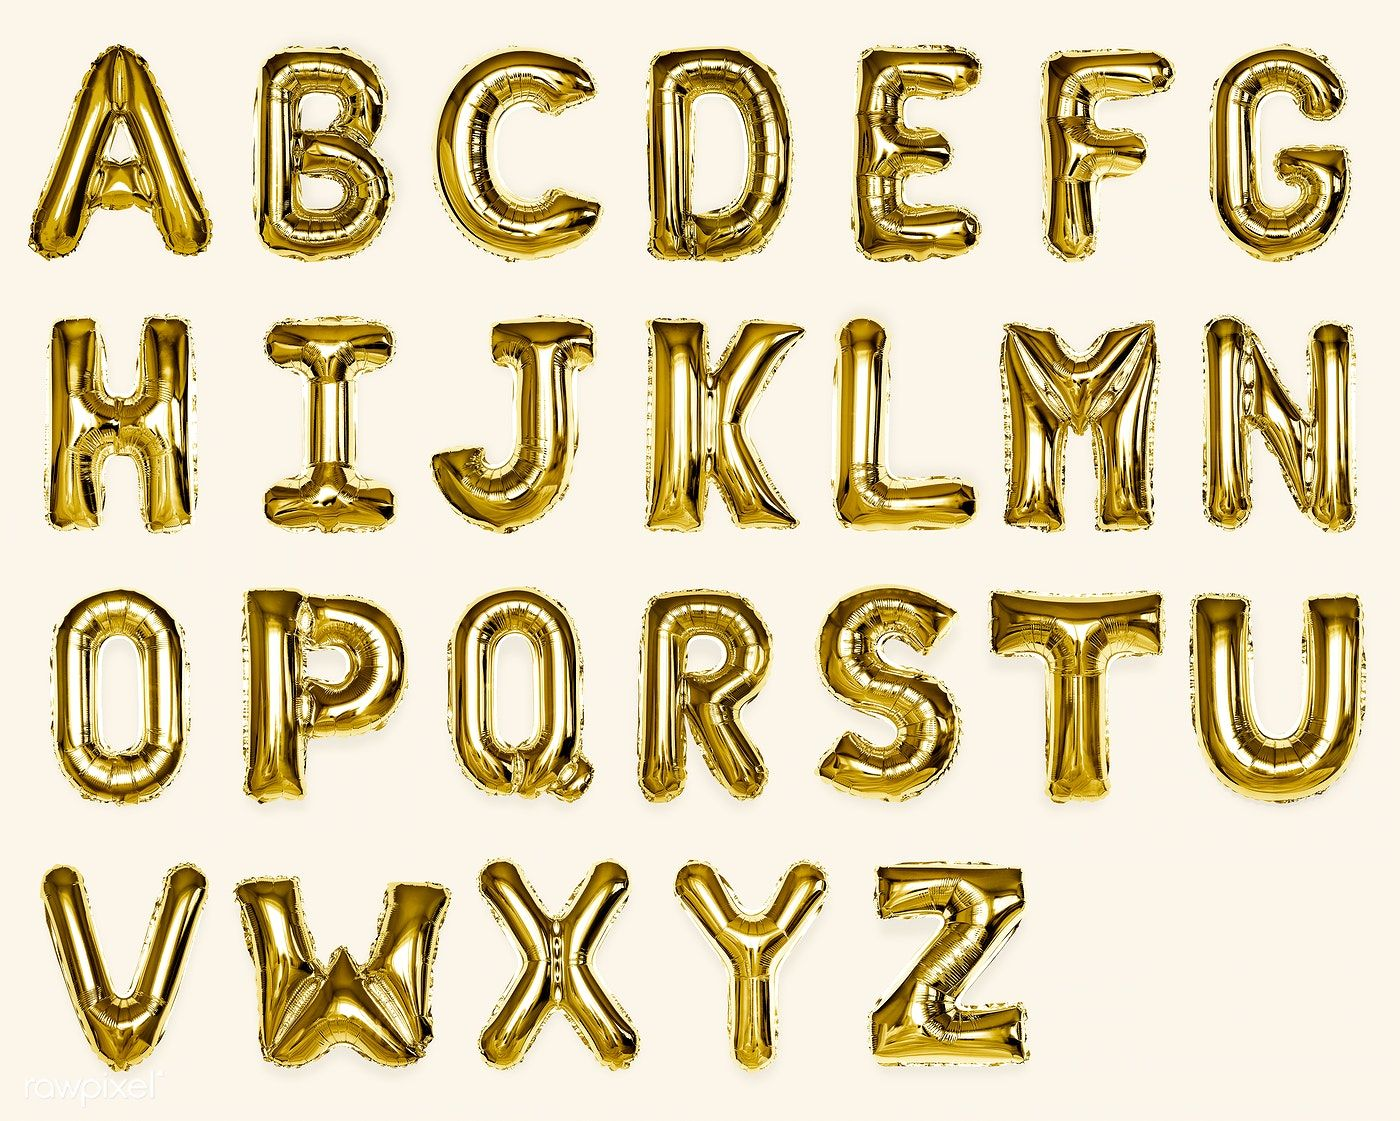 Set Of Gold Capital A Z Alphabet Balloons Free Image By Rawpixel Com In 2020 Balloons Numbers Typography Lettering Alphabet